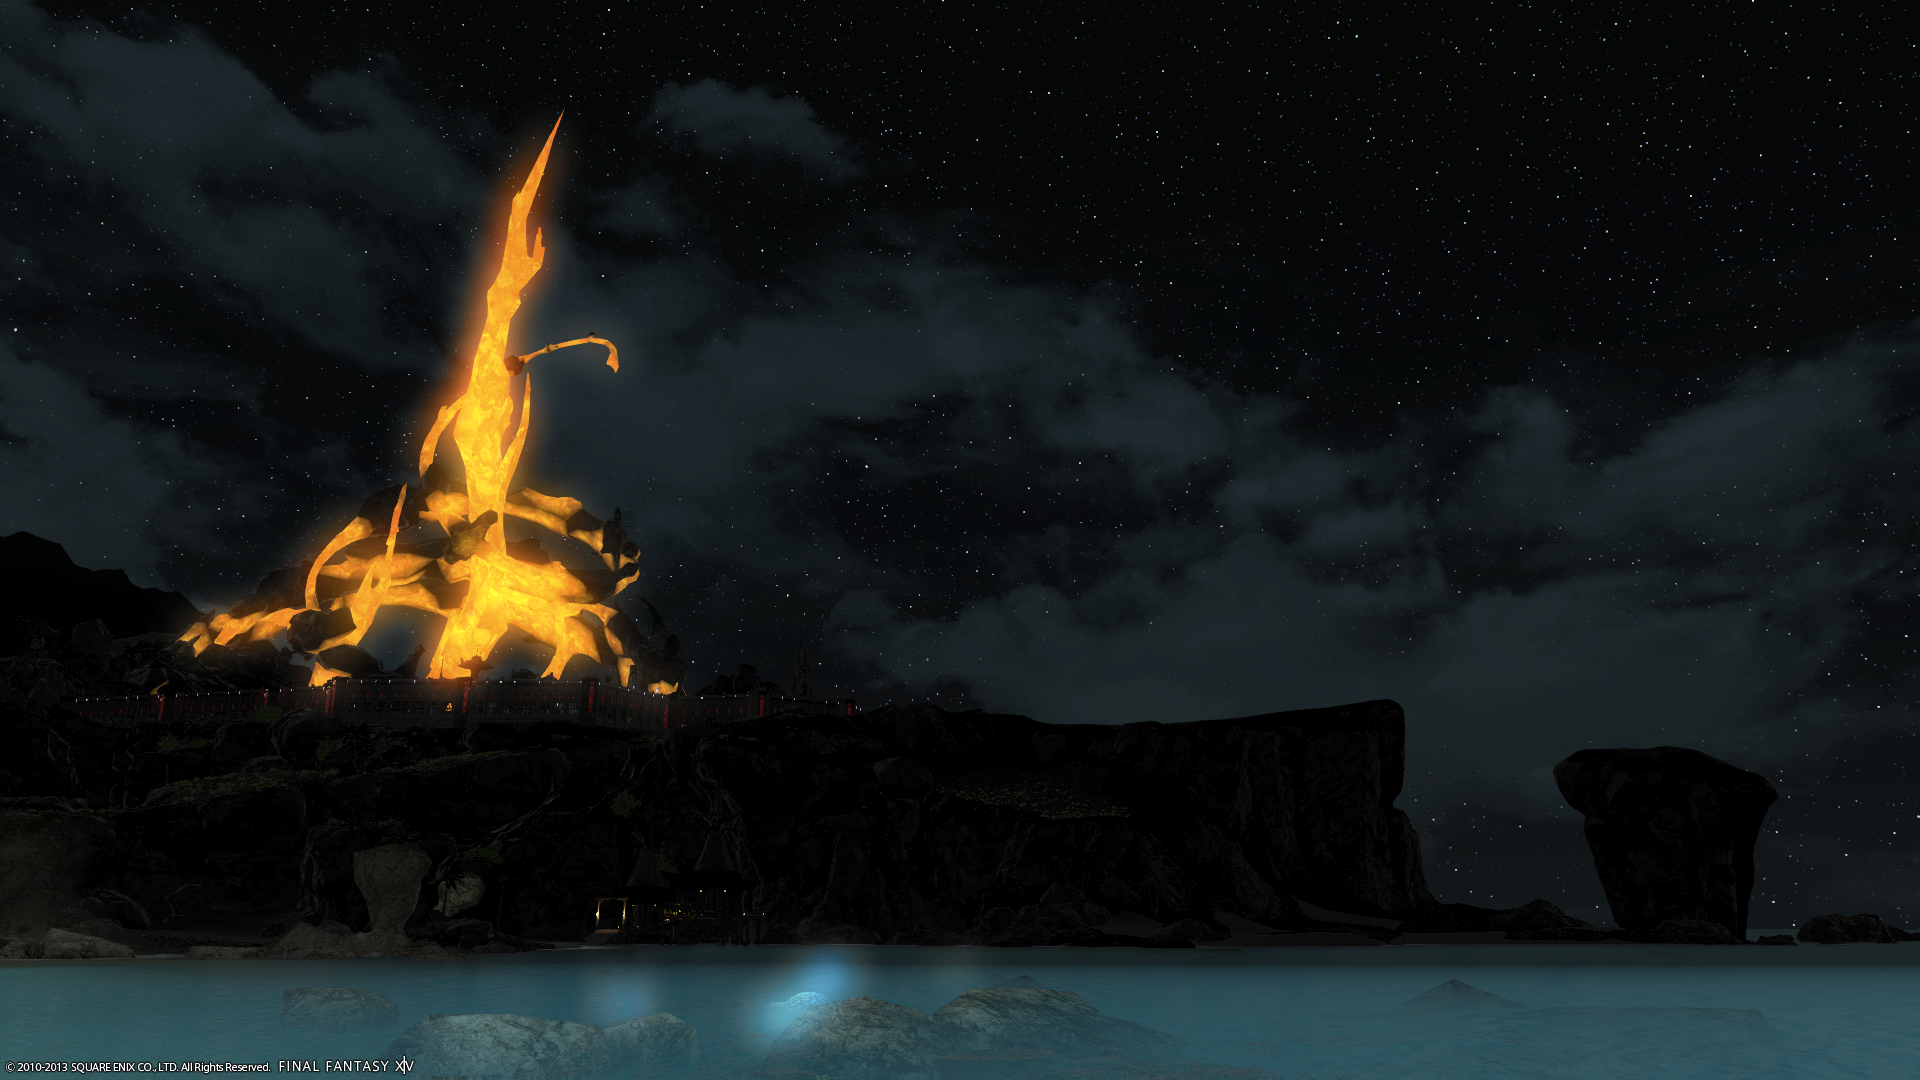 Final Fantasy XIV: A Realm Reborn - One of many Emperial Fortresses in the distance